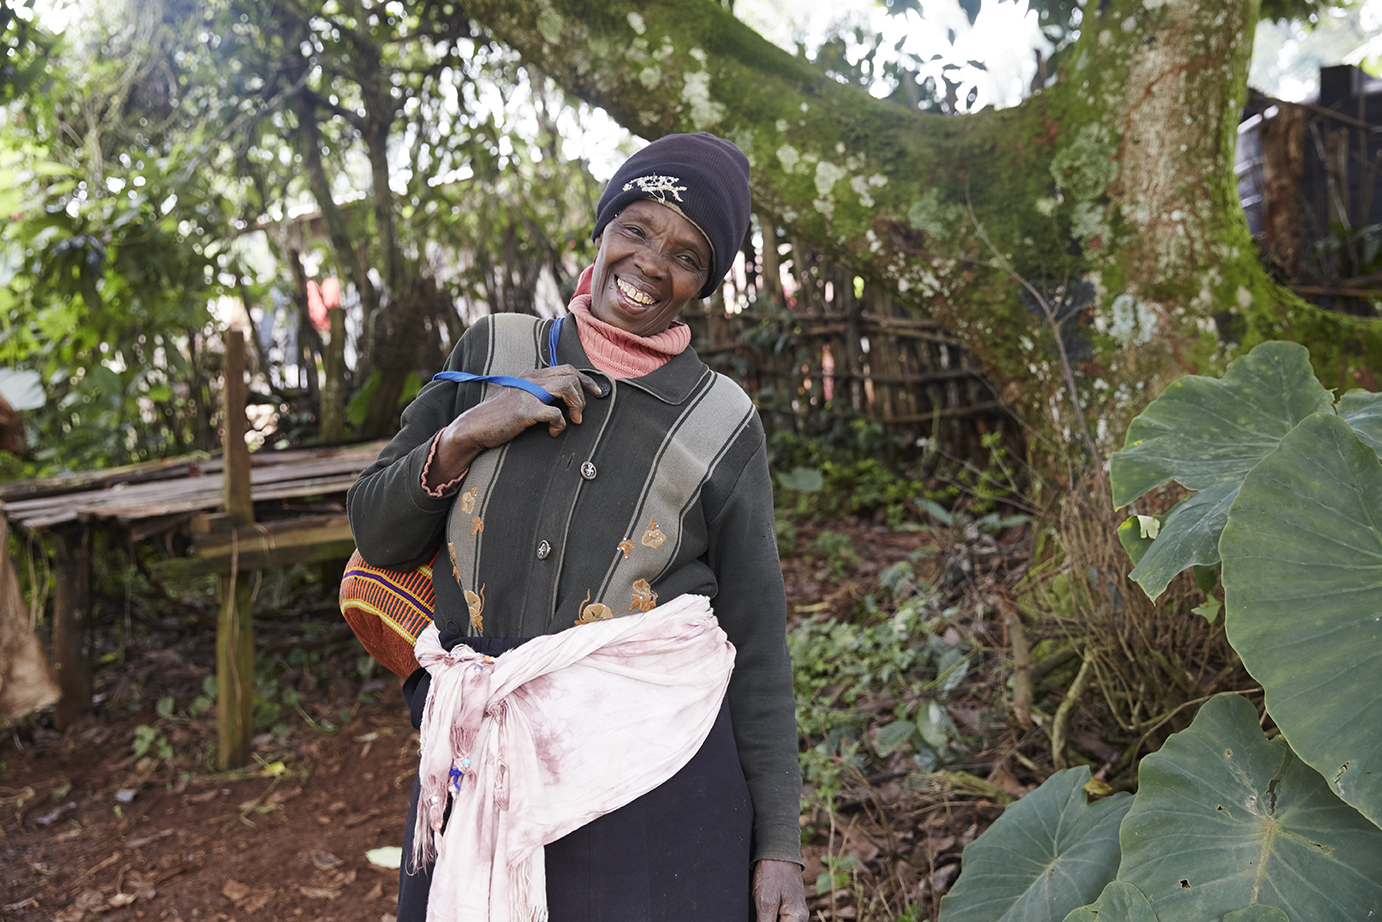 Jane is a farmer from Makomboki, Kenya. She has 3 acres of land that she uses to grow tea or income generation along with vegetables for her families consumption.